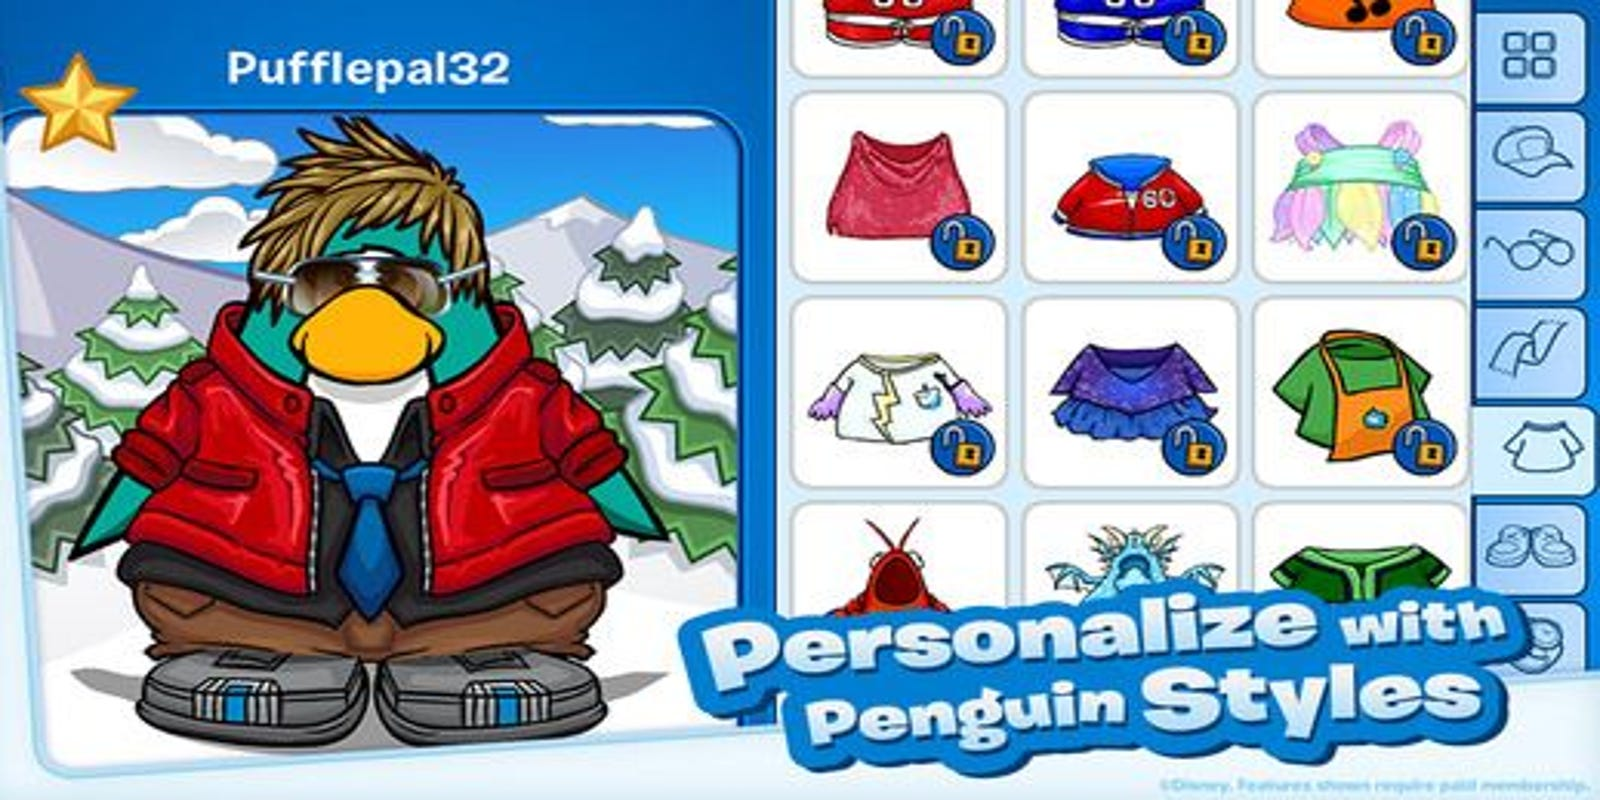 Club Penguin is shutting down and everyone is sad